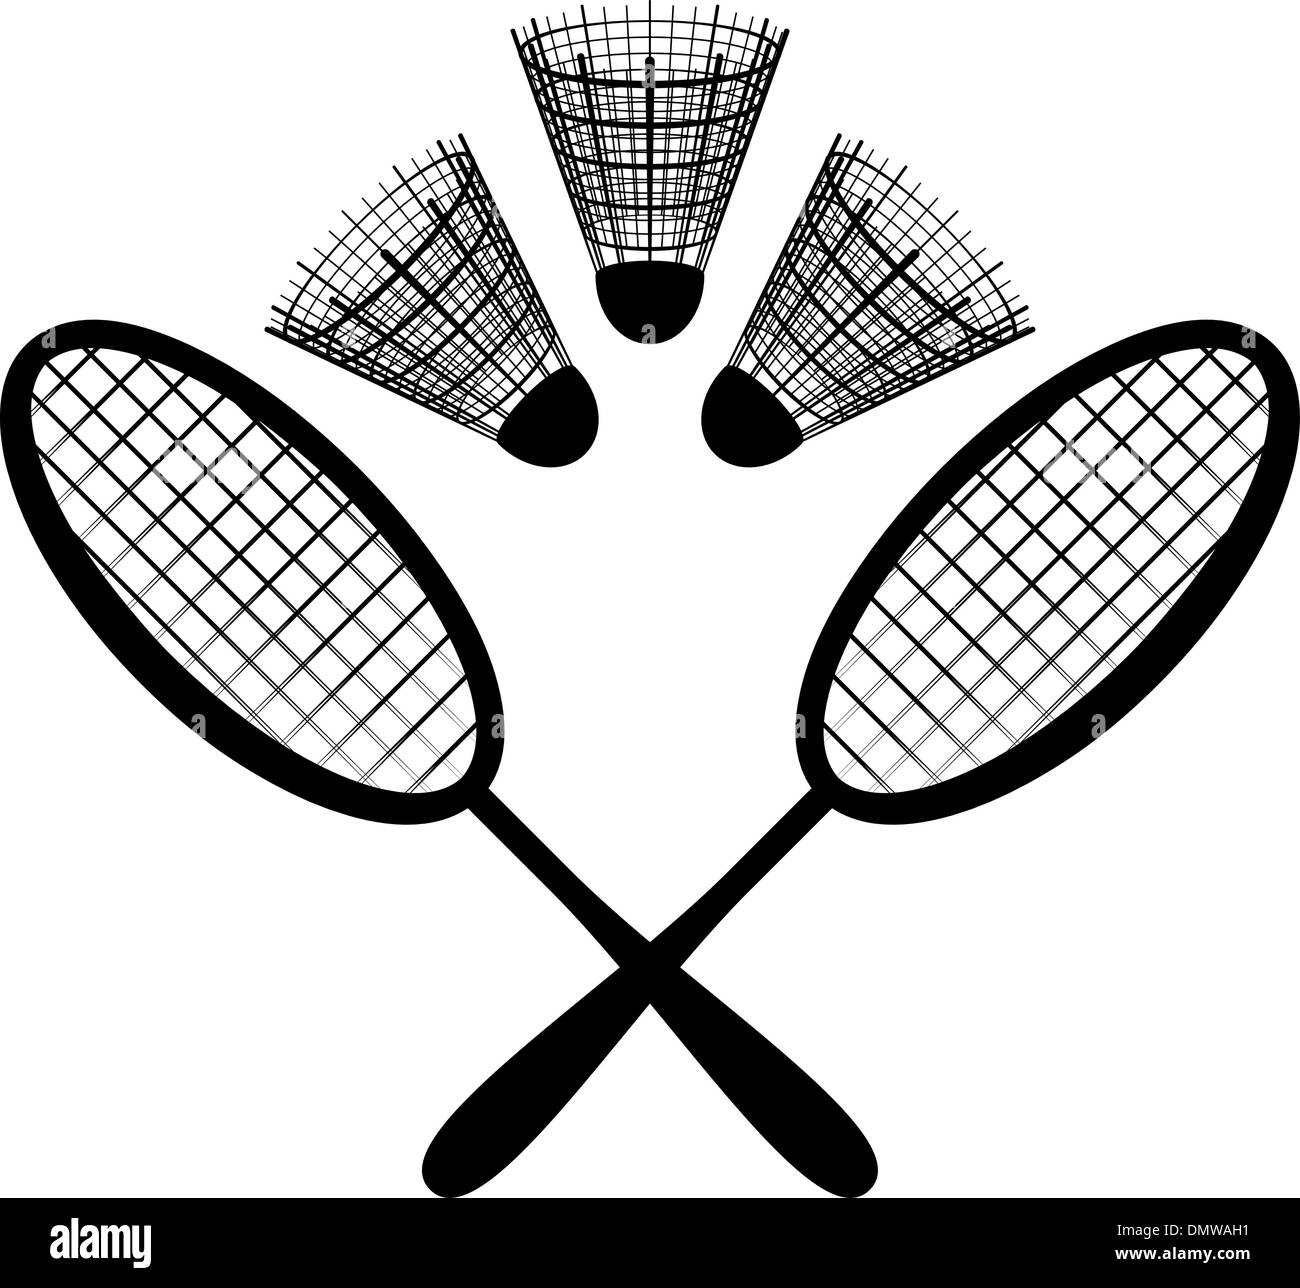 hight resolution of equipment for the badminton silhouette stock image